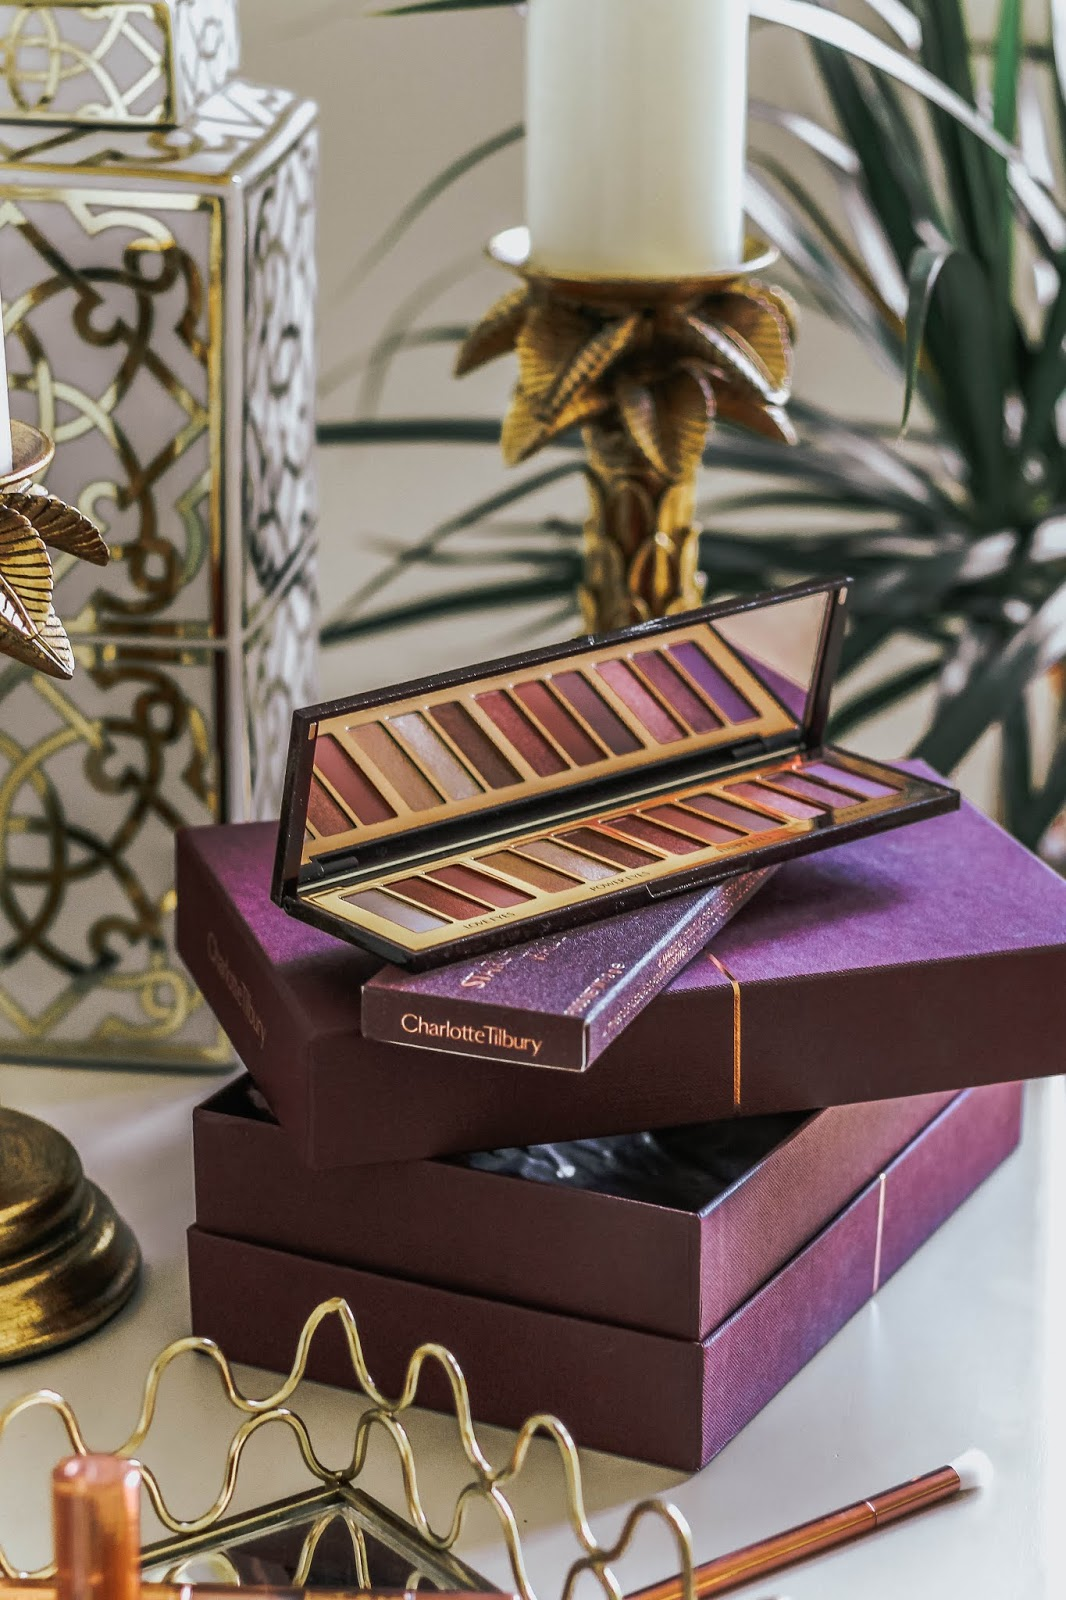 Charlotte Tilbury Stars In Your Eyes Eyeshadow Palette Review